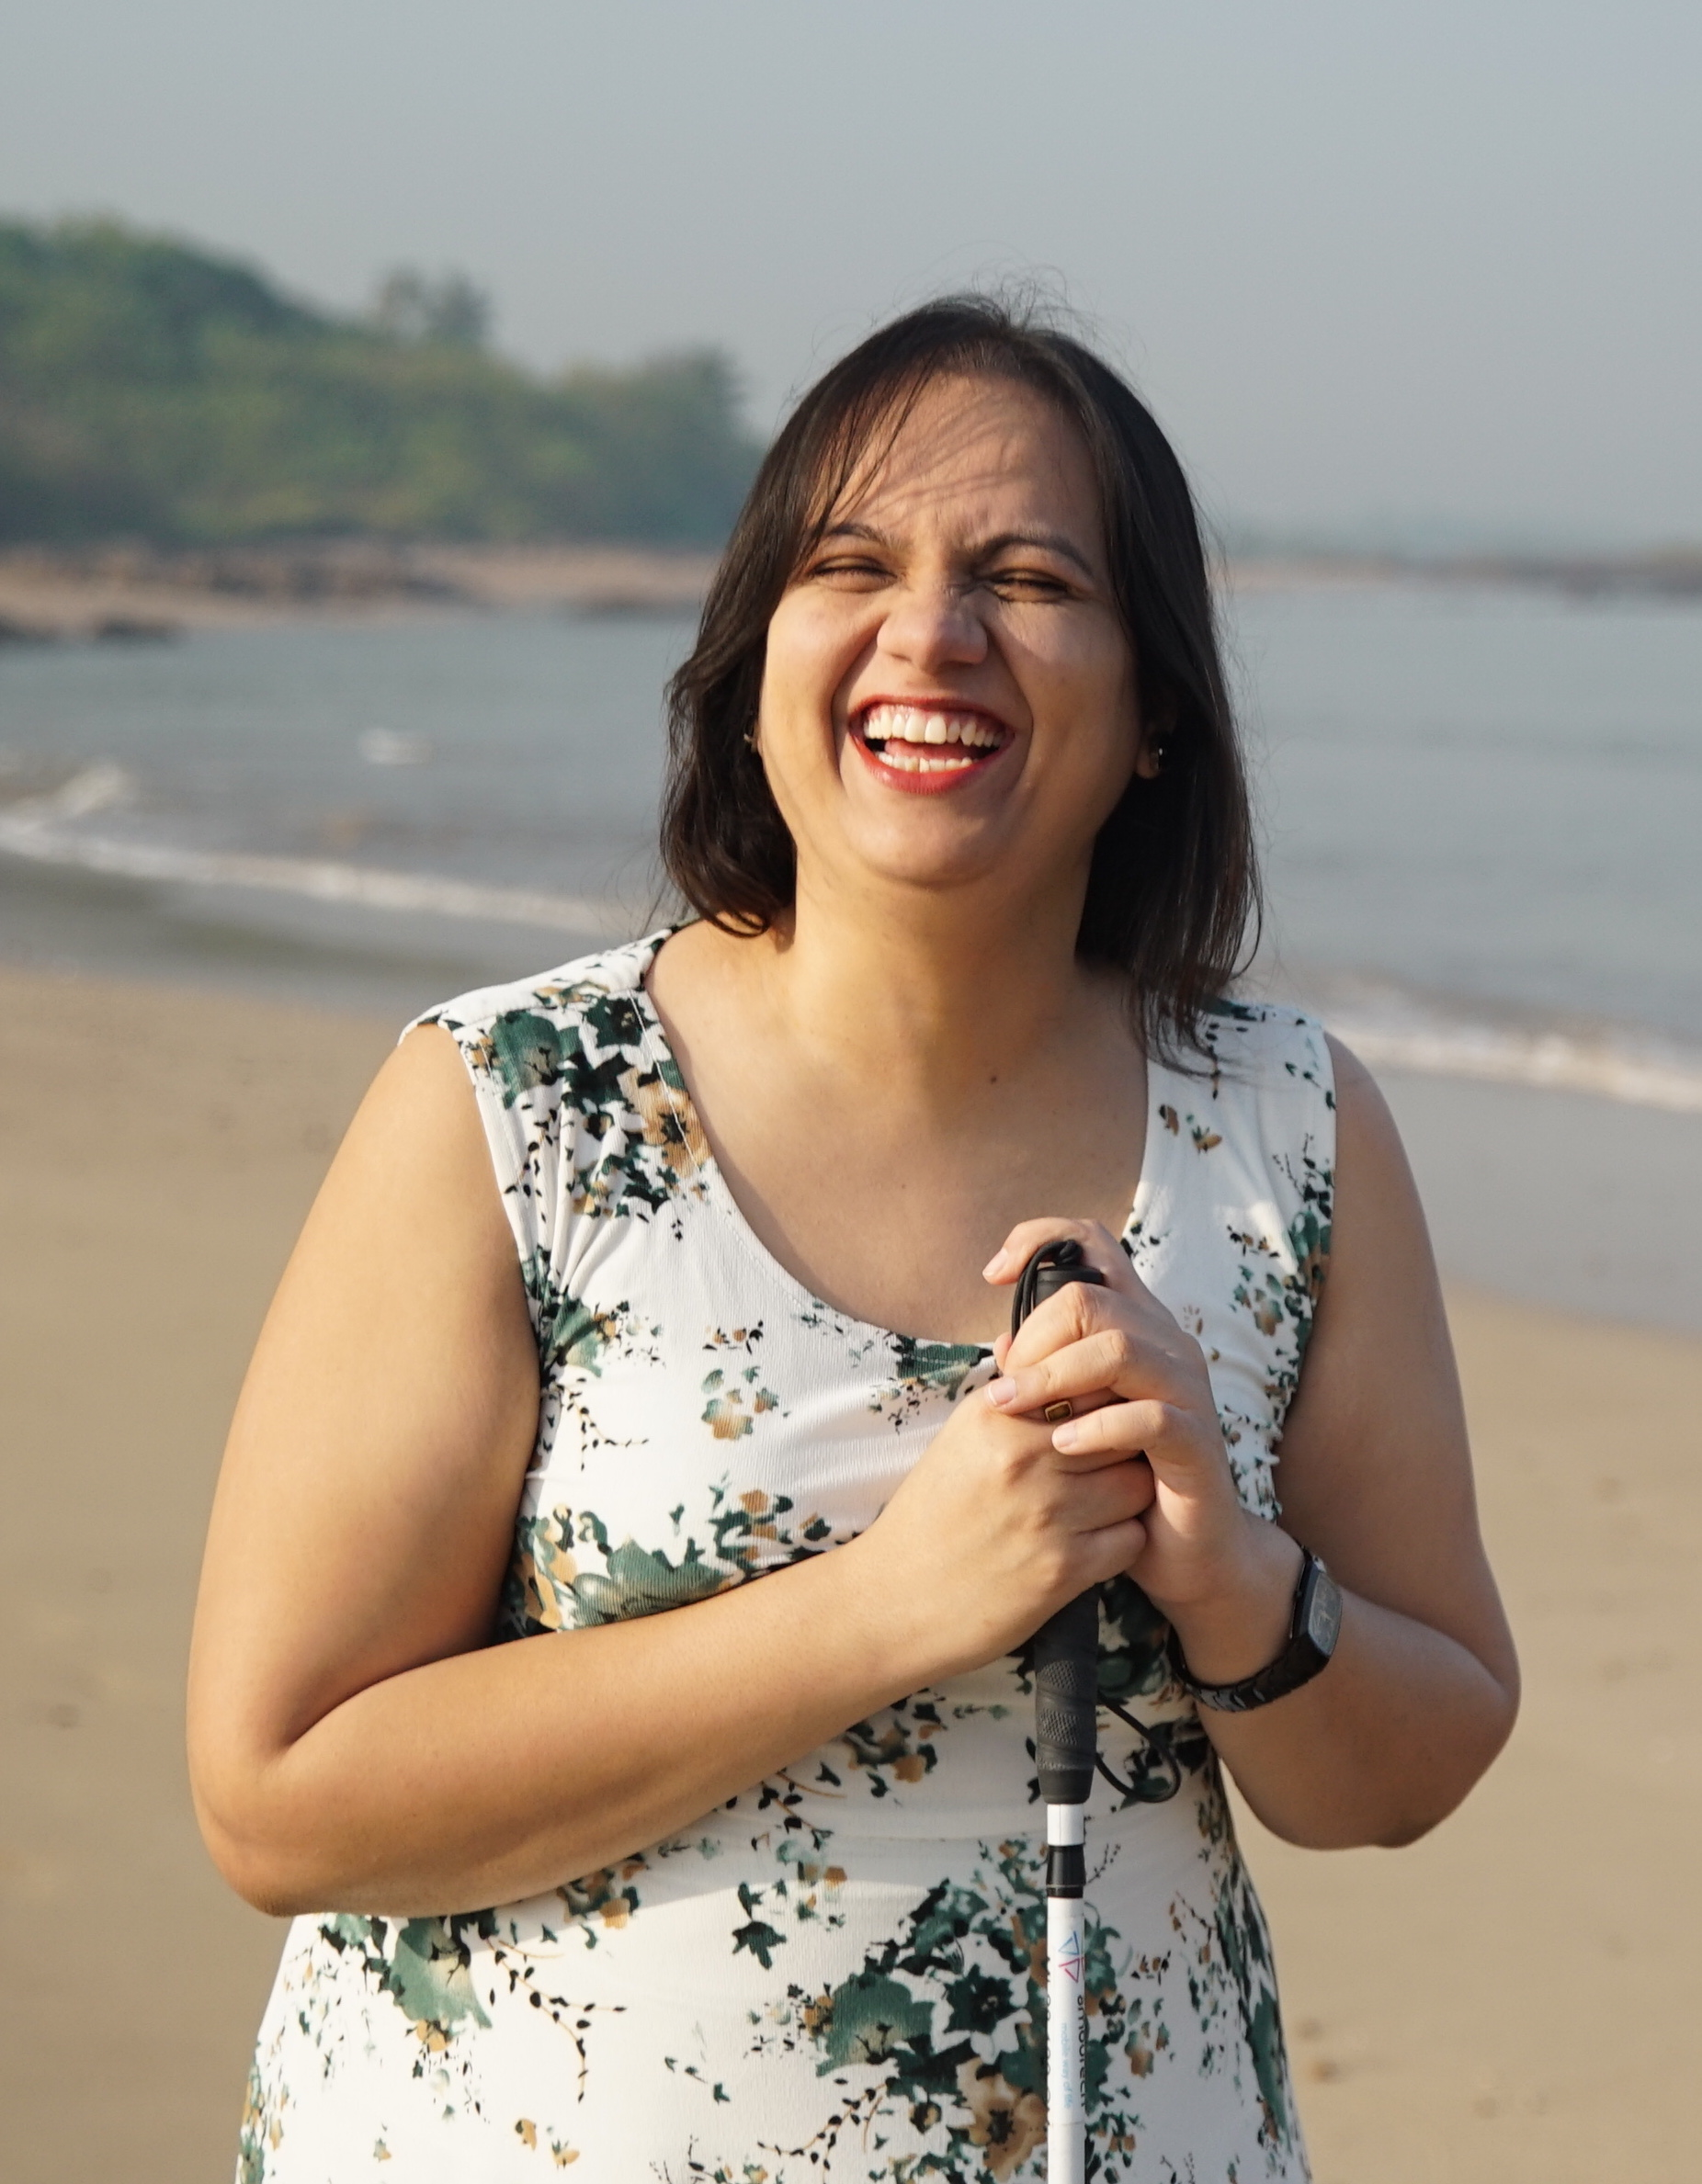 Nidhi Goyal standing on the beach with her cane. She is wearing a white sleevless dress and is smiling at the camera. We can see the waters behind her.